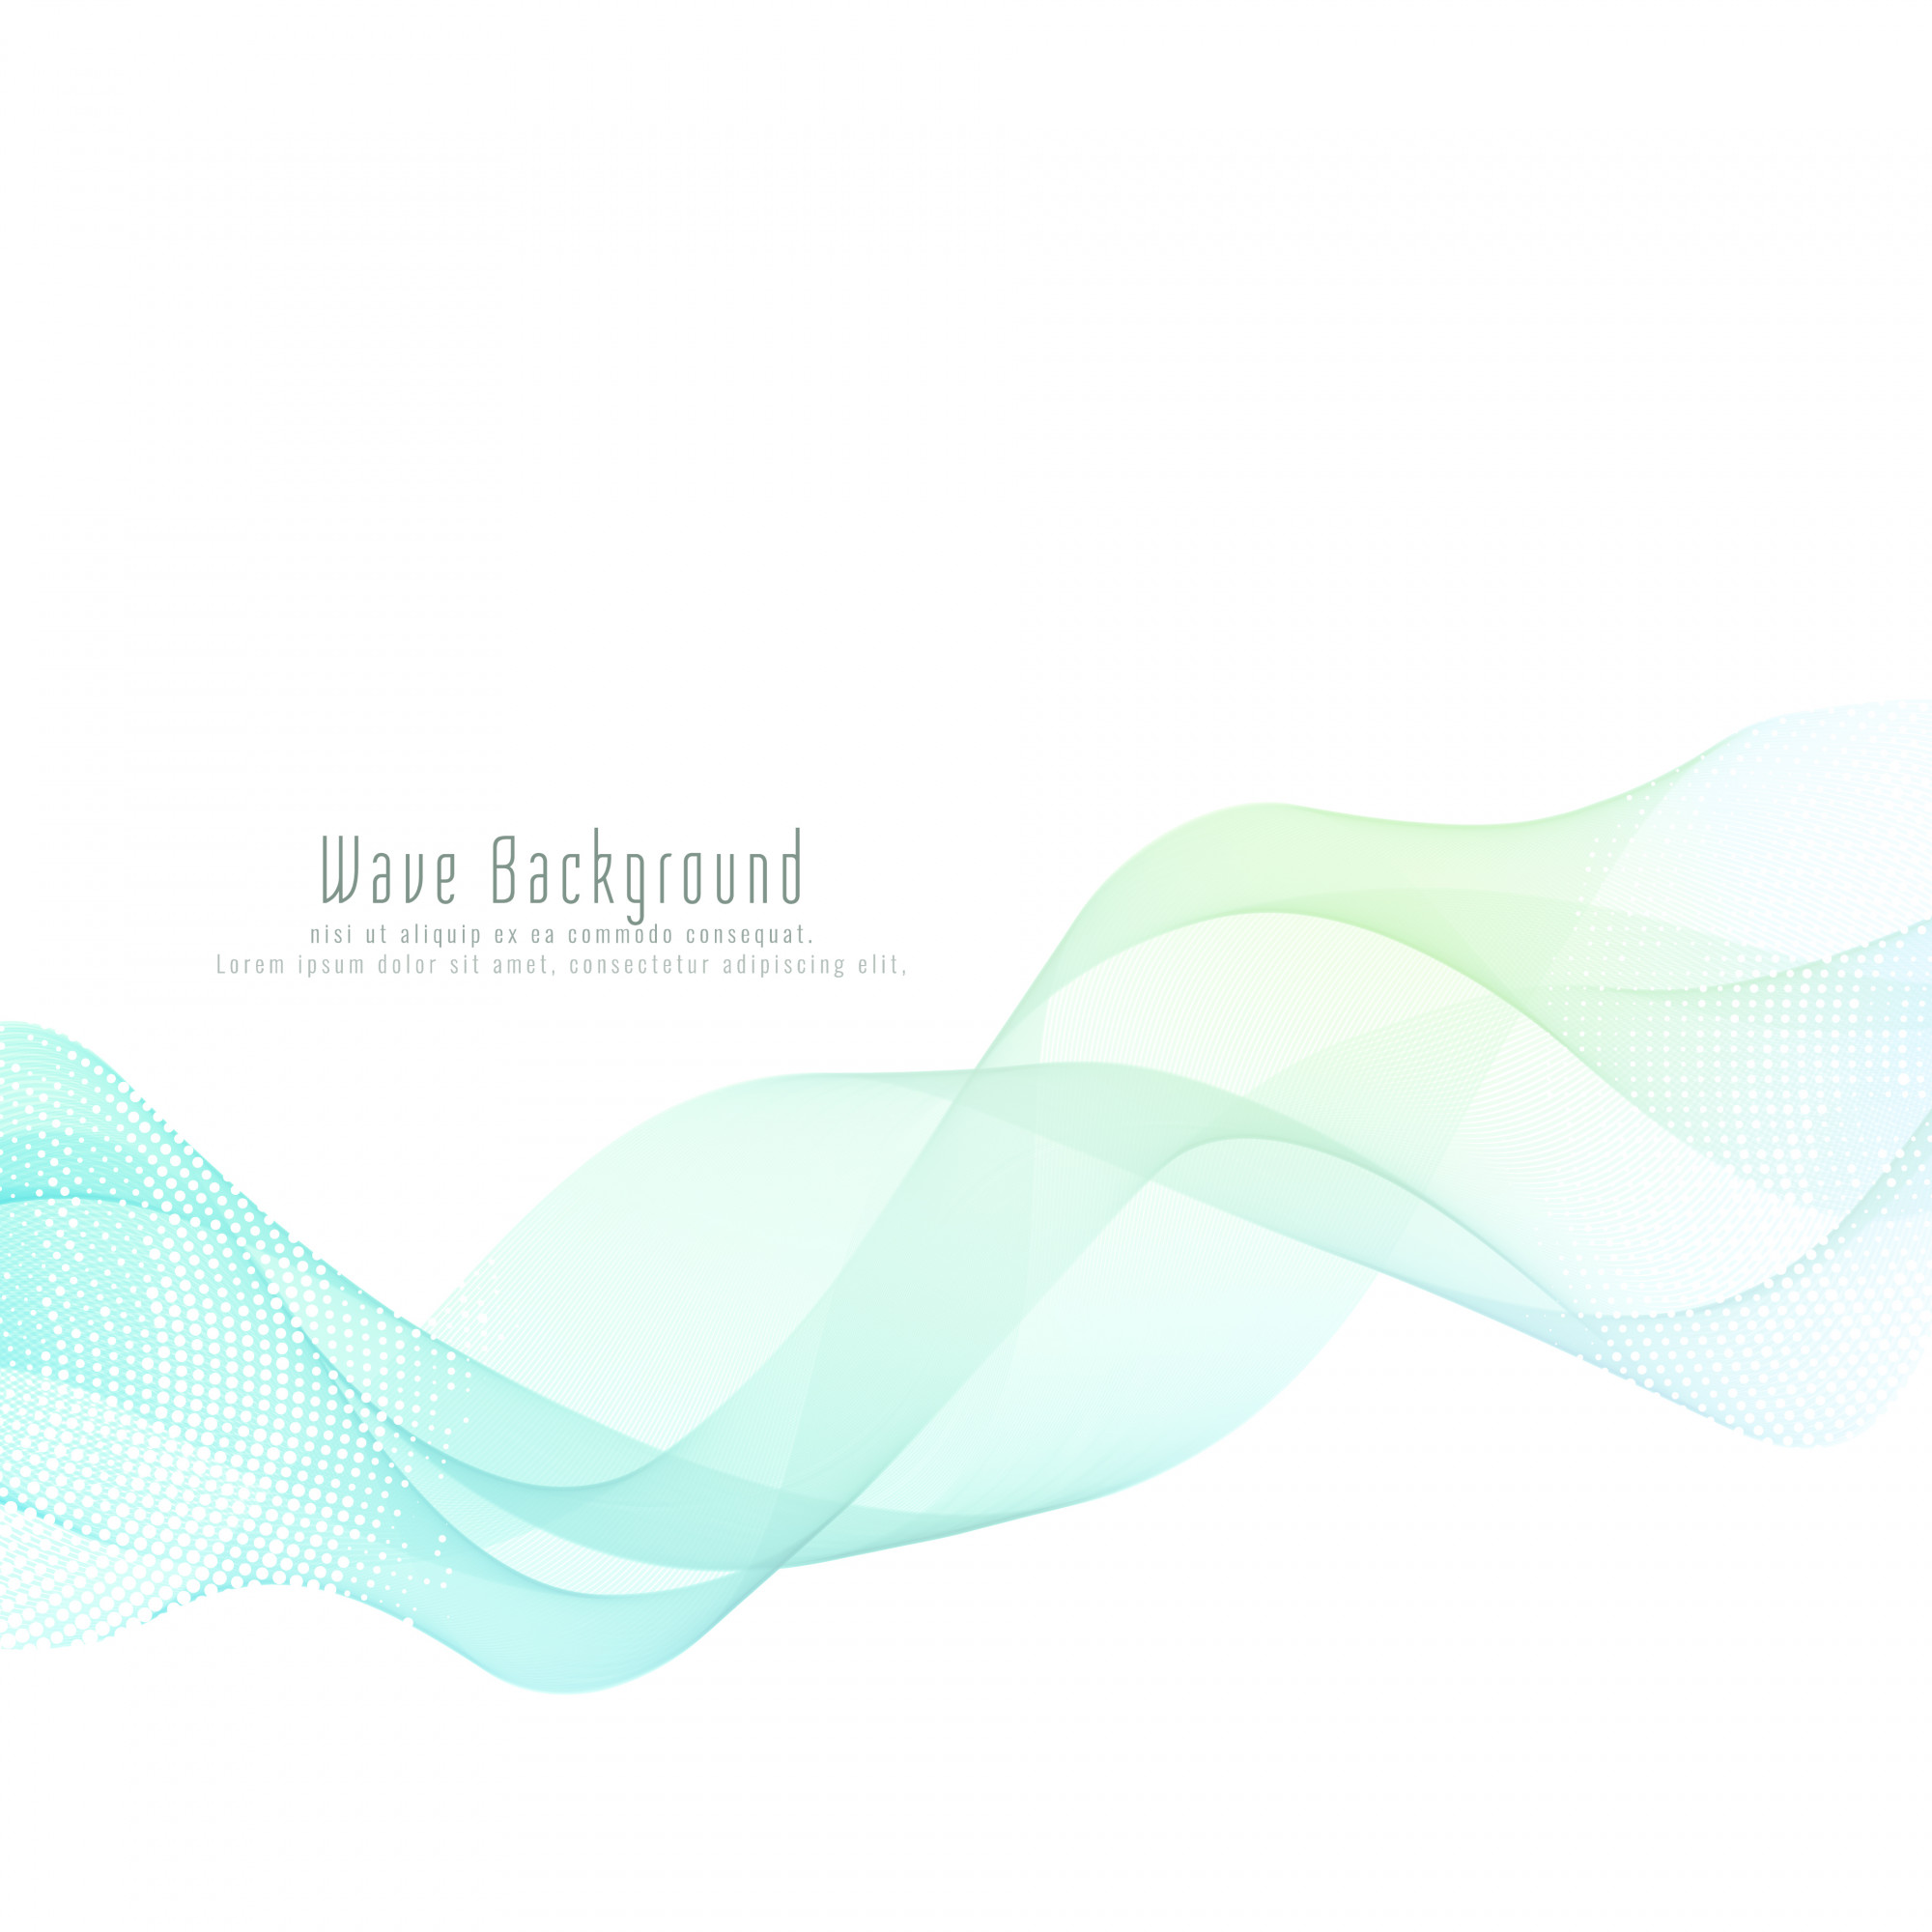 Abstract styish wave background